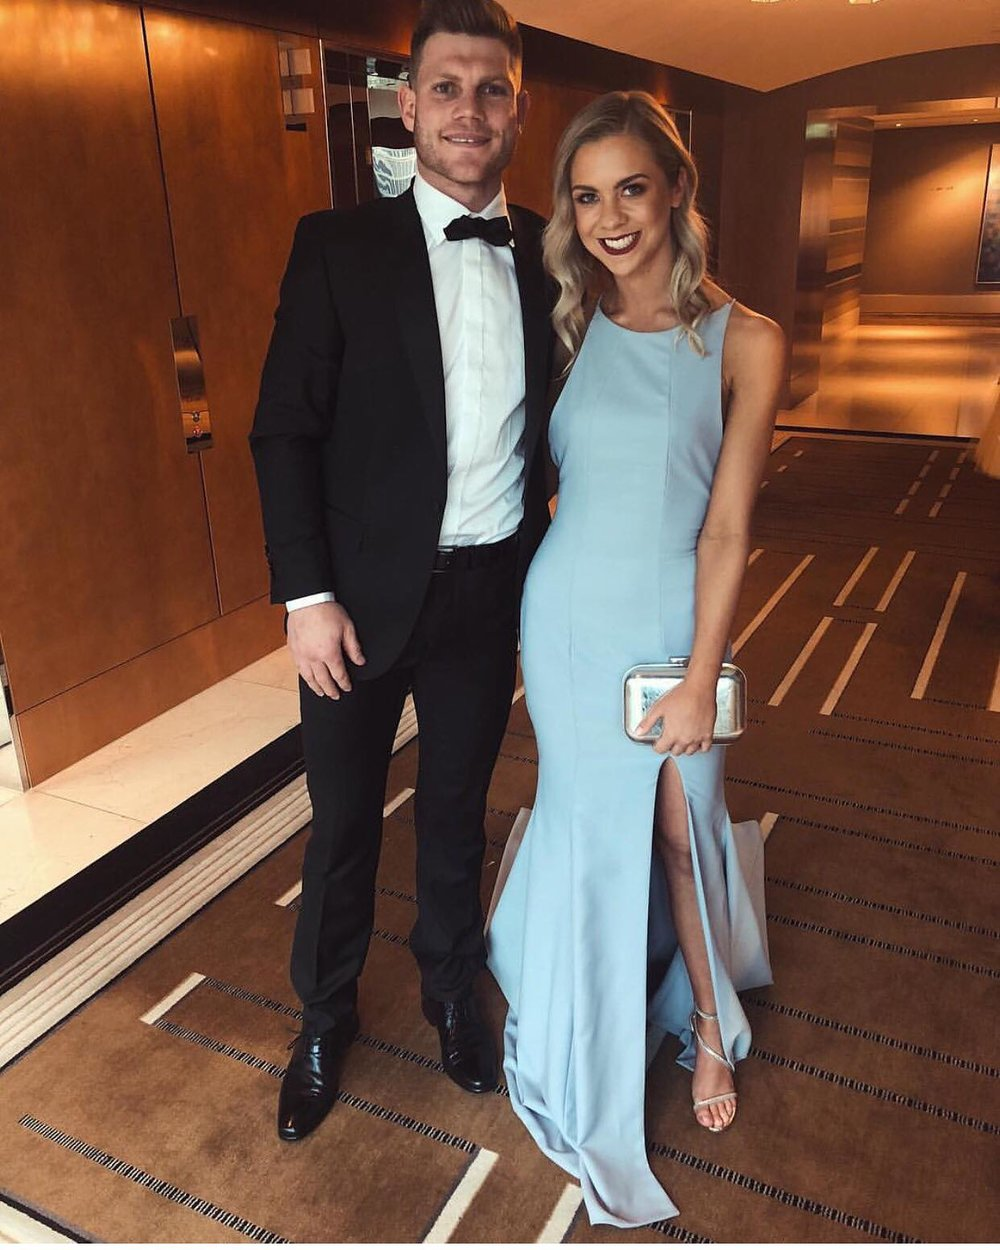 Brownlow 2018 - Taylor Adams with partner Ellie Thornycroft wearing bespoke gown by Meg Parry Studio